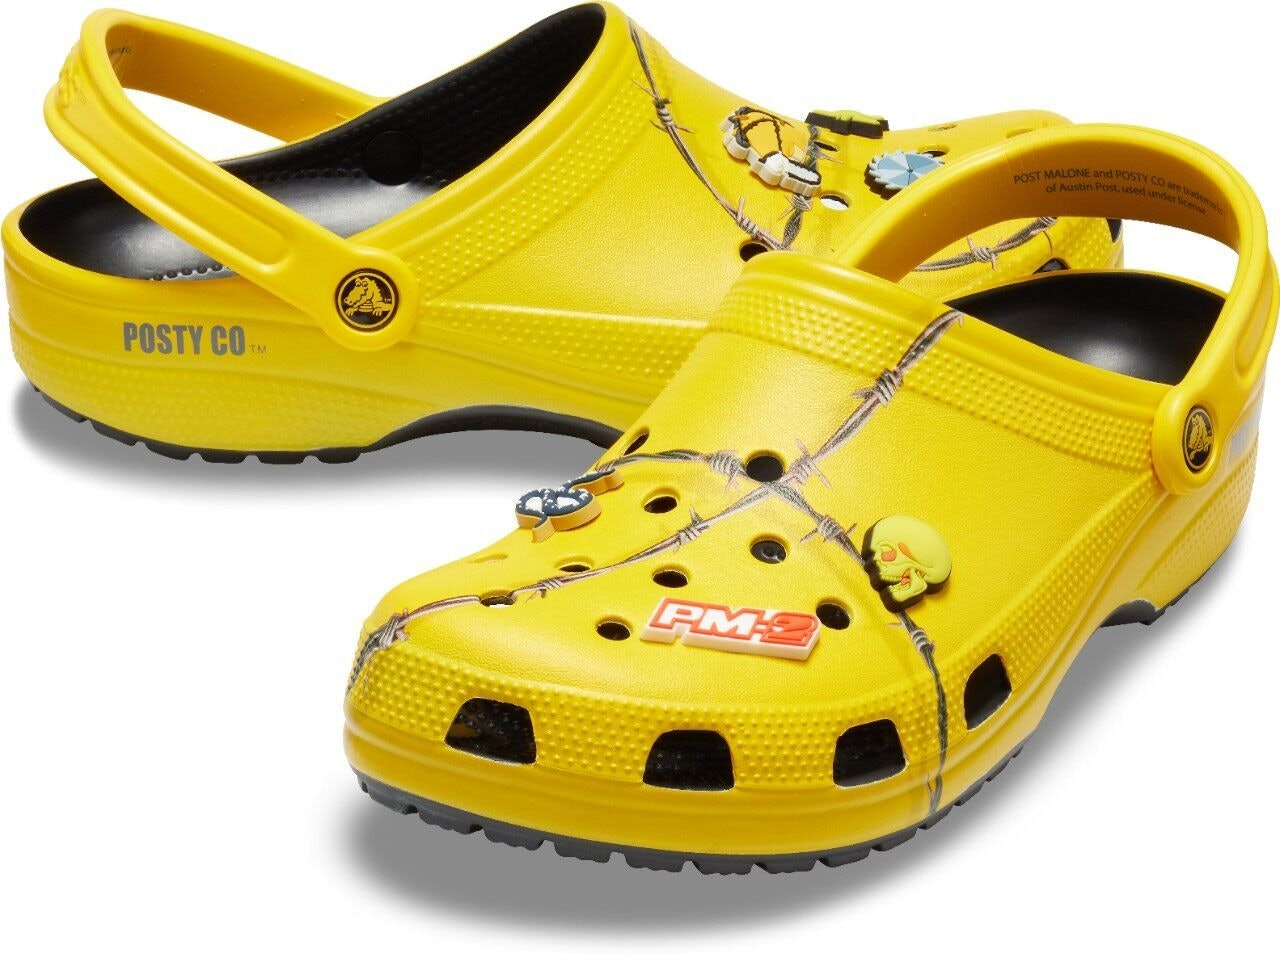 7152f9c40 Where Can You Buy The Post Malone X Crocs Barbed Wire Clogs  The Quirky  Shoes Are Sure To Sell Out